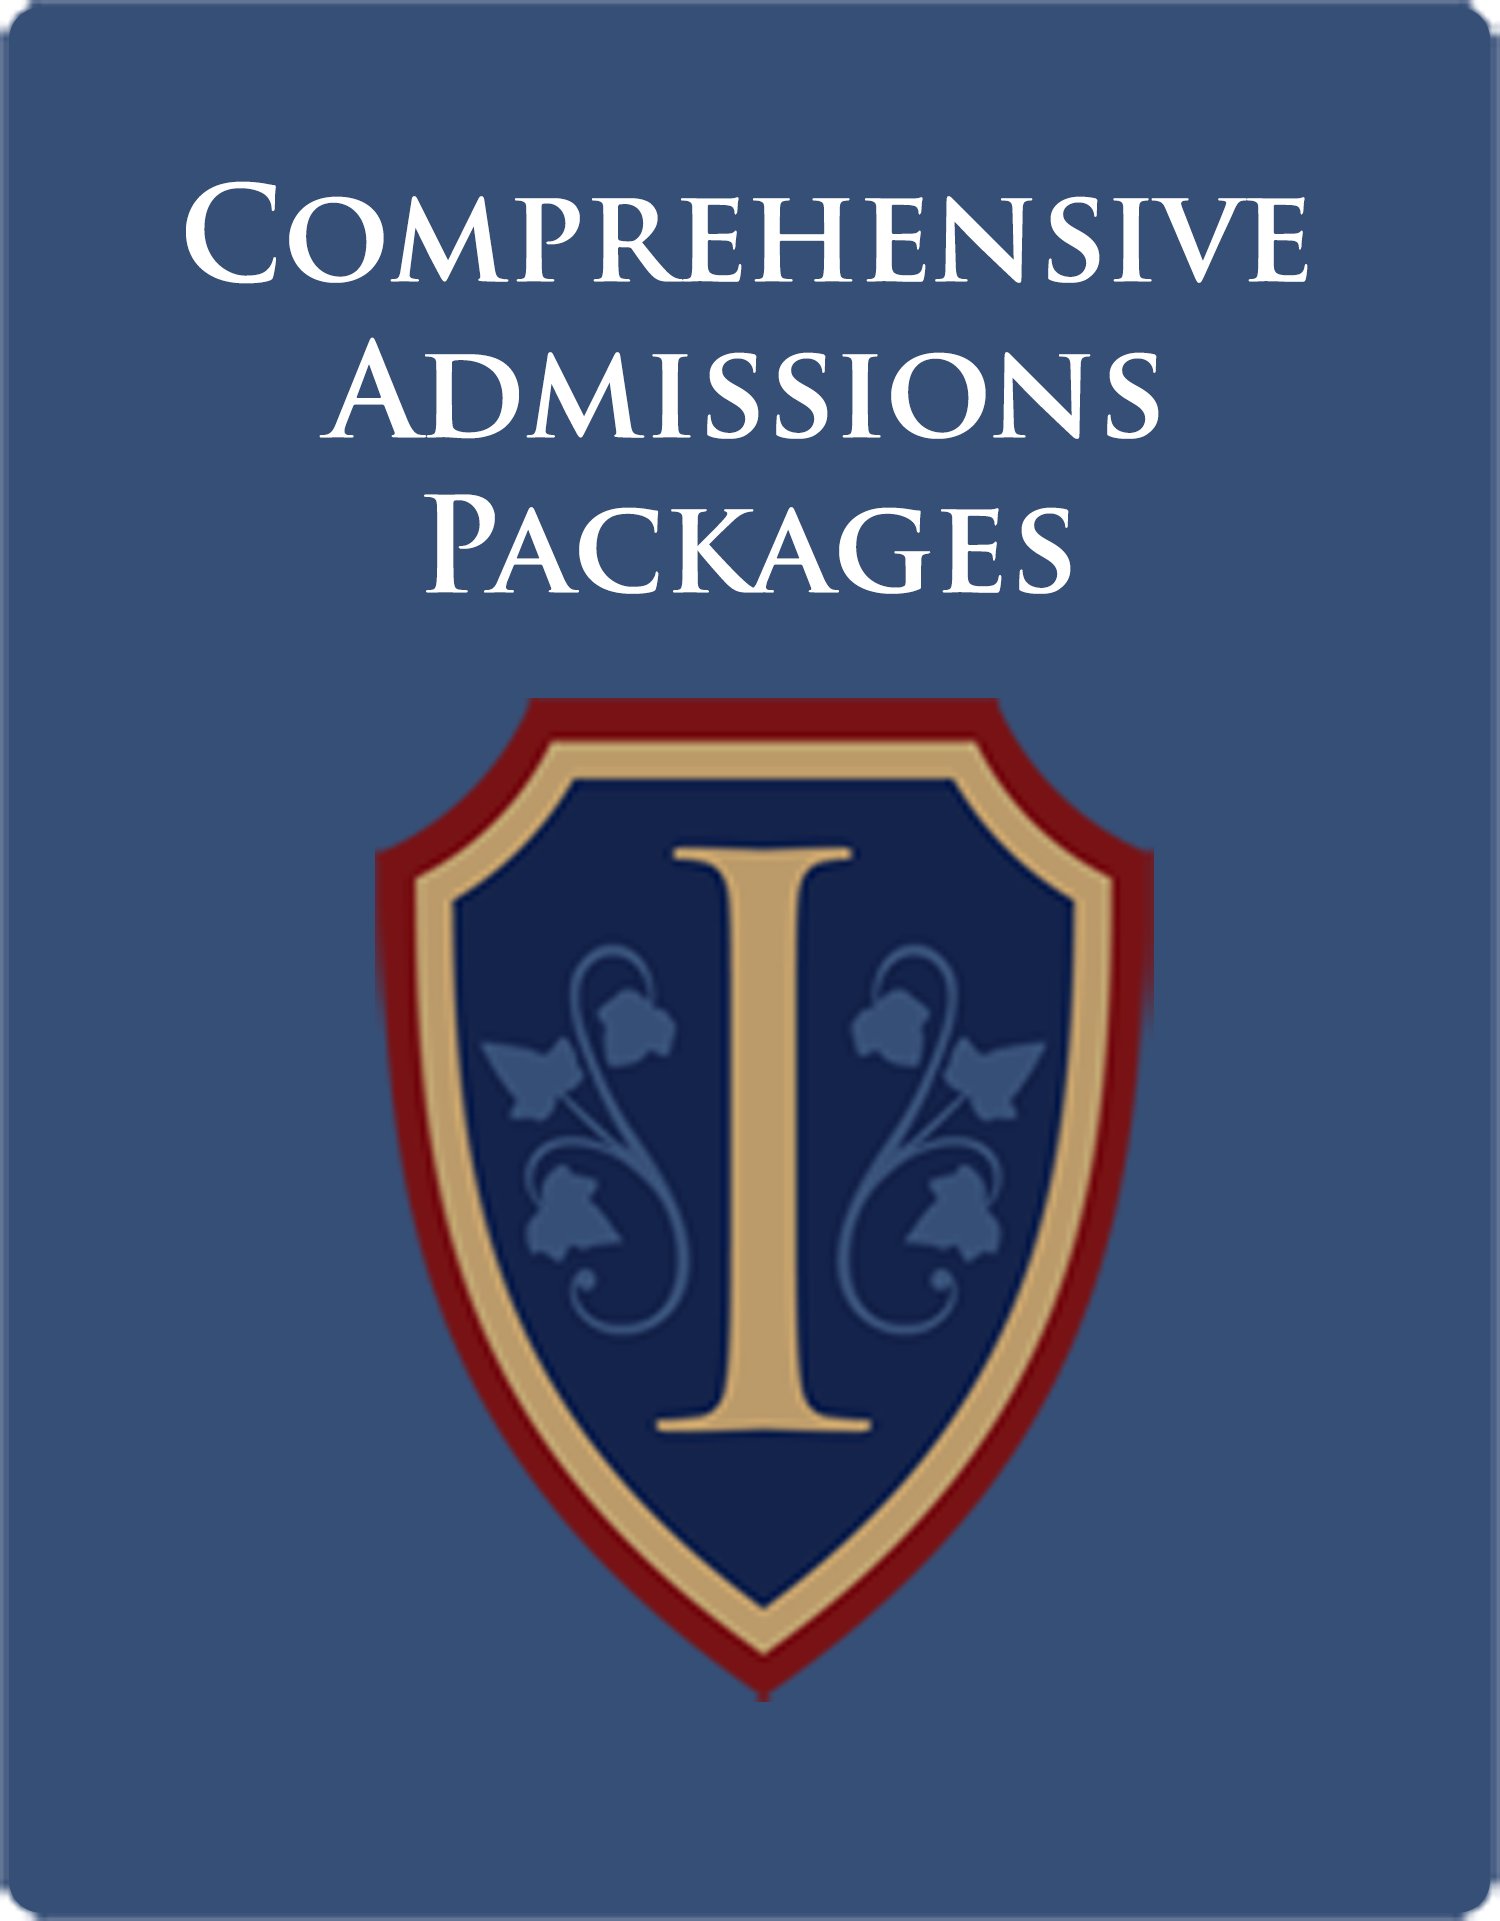 college admissions counseling packages.jpg